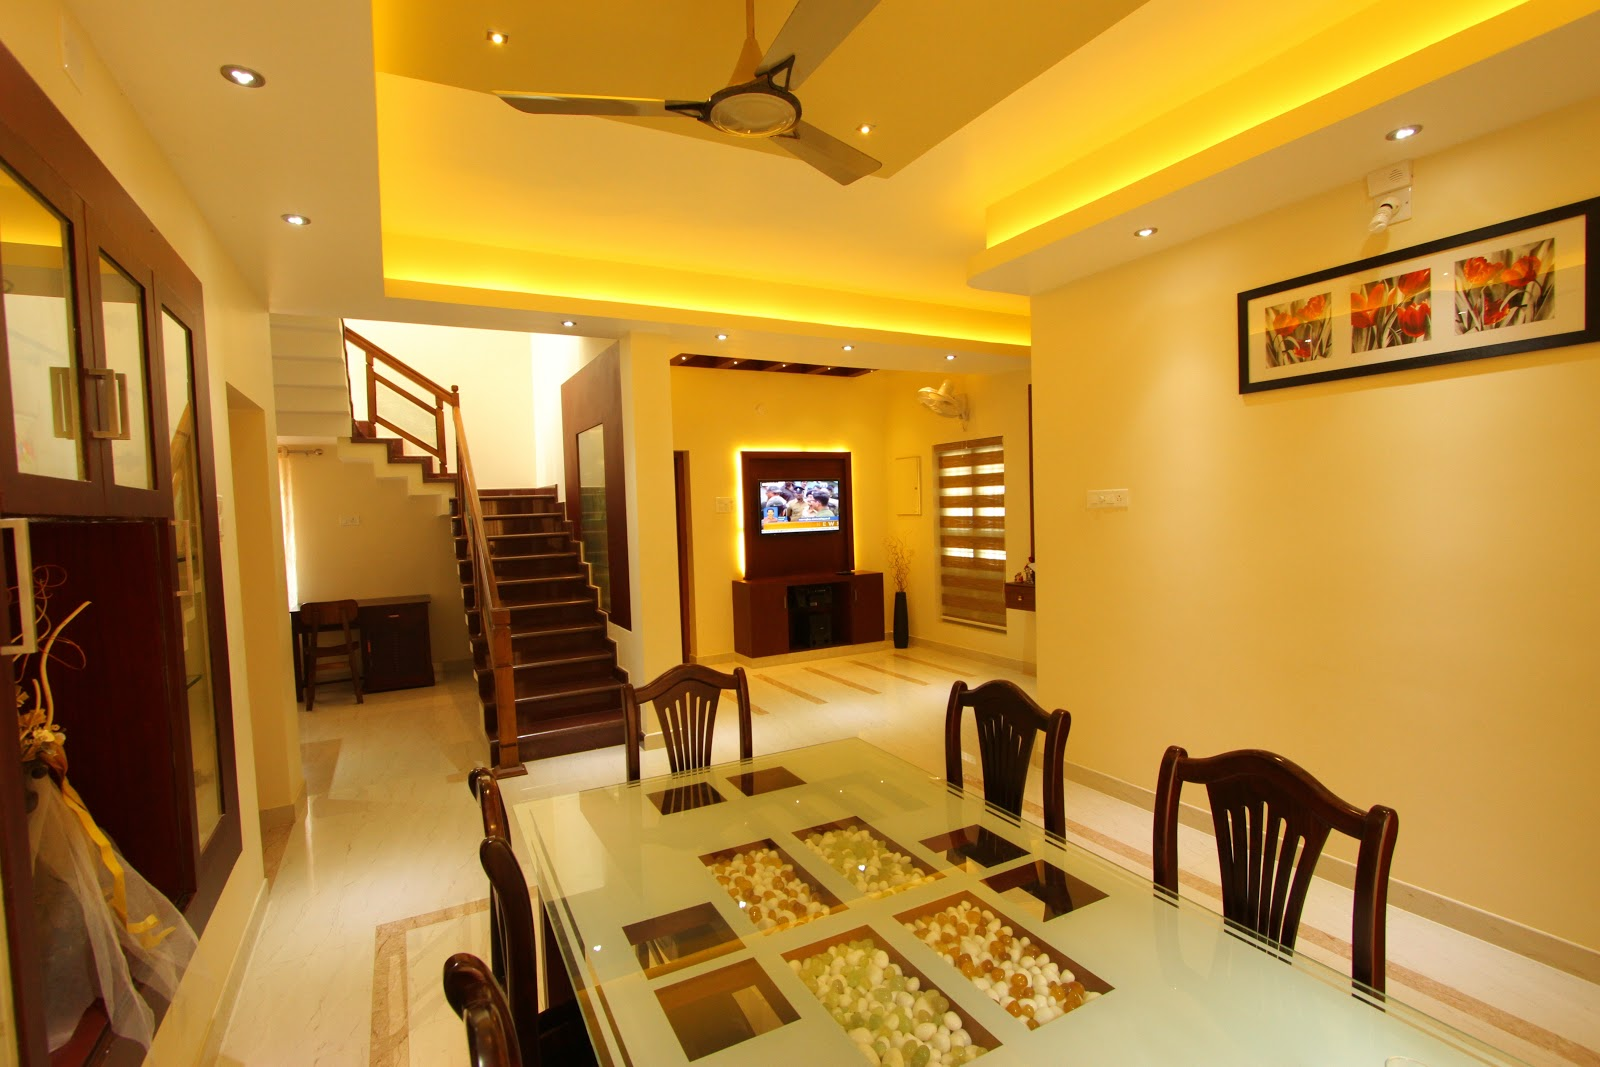 Shilpakala interiors award winning home interior design for House dining hall design